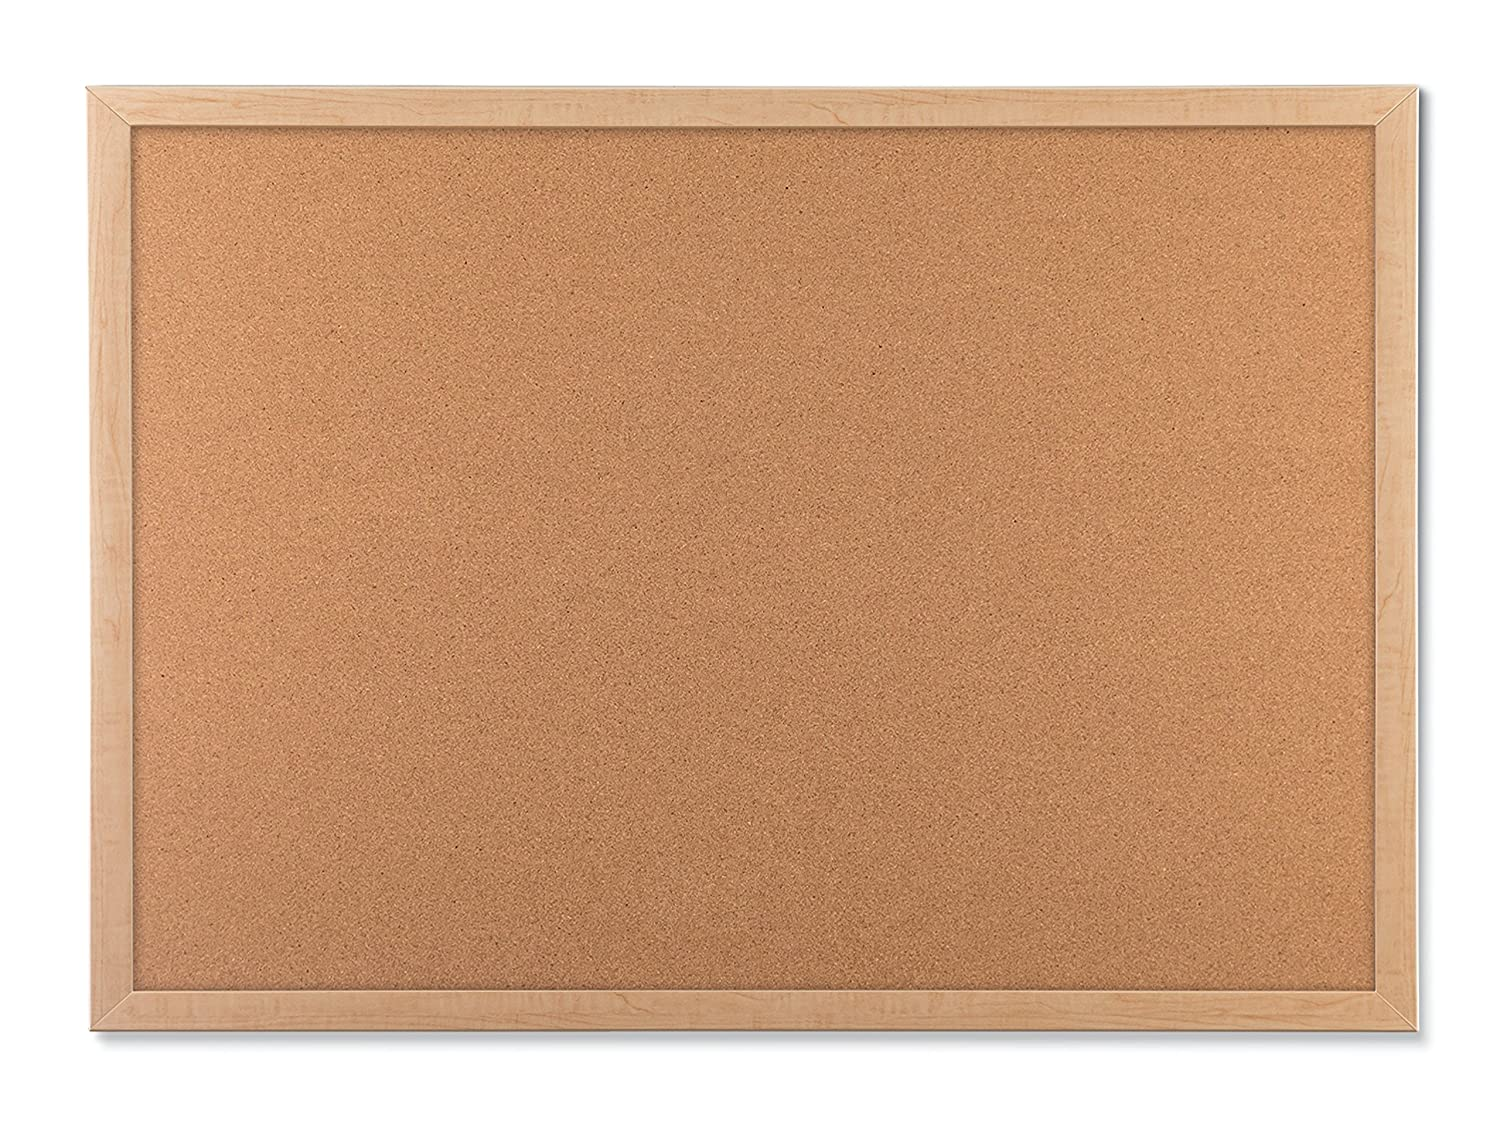 Cork Bulletin Board Amazoncom U Brands Cork Bulletin Board 23 X 17 Inches Light